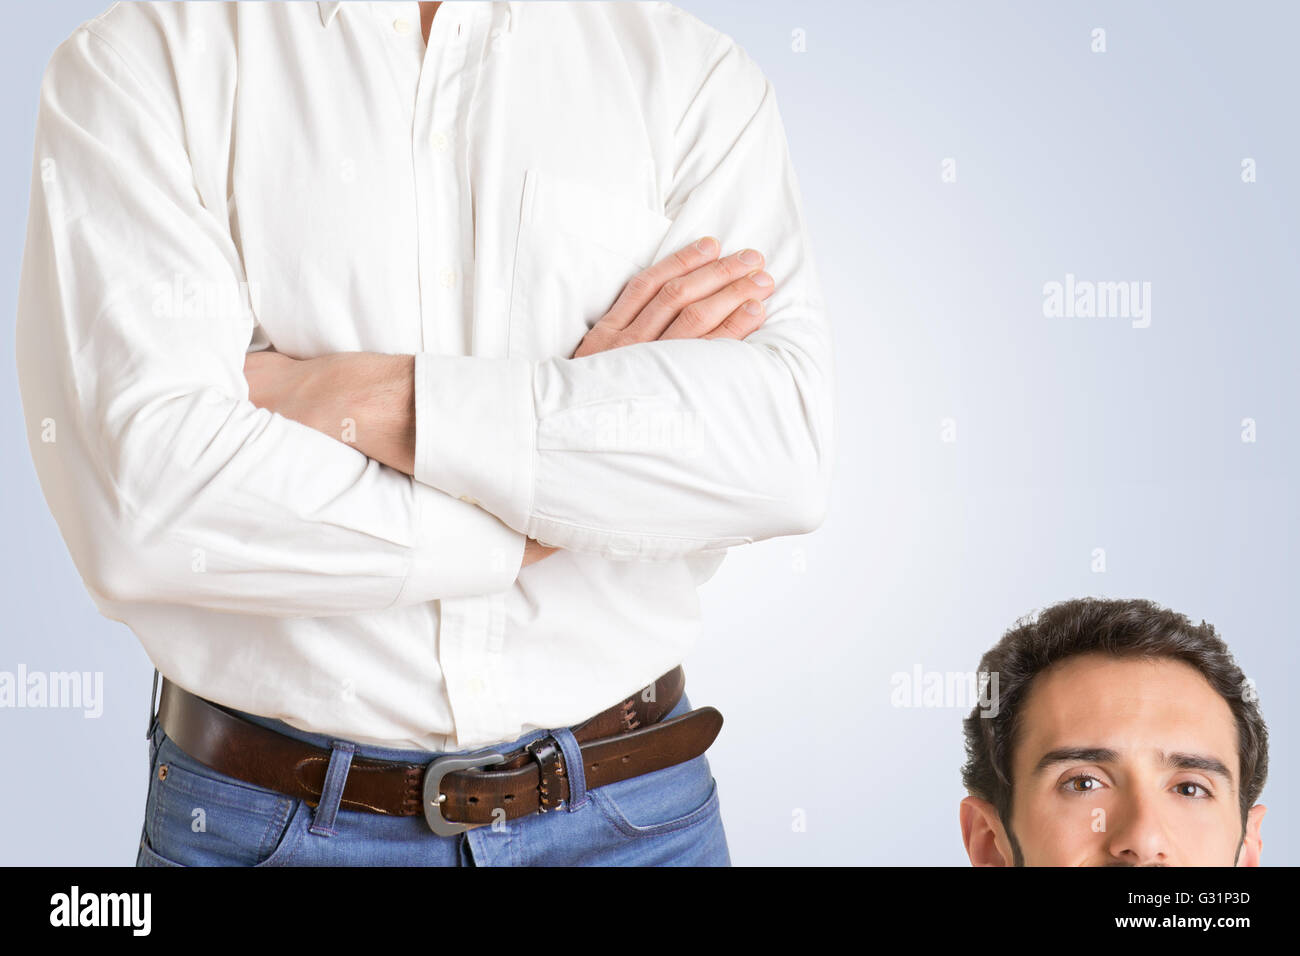 Height difference between two men in a blue background - Stock Image